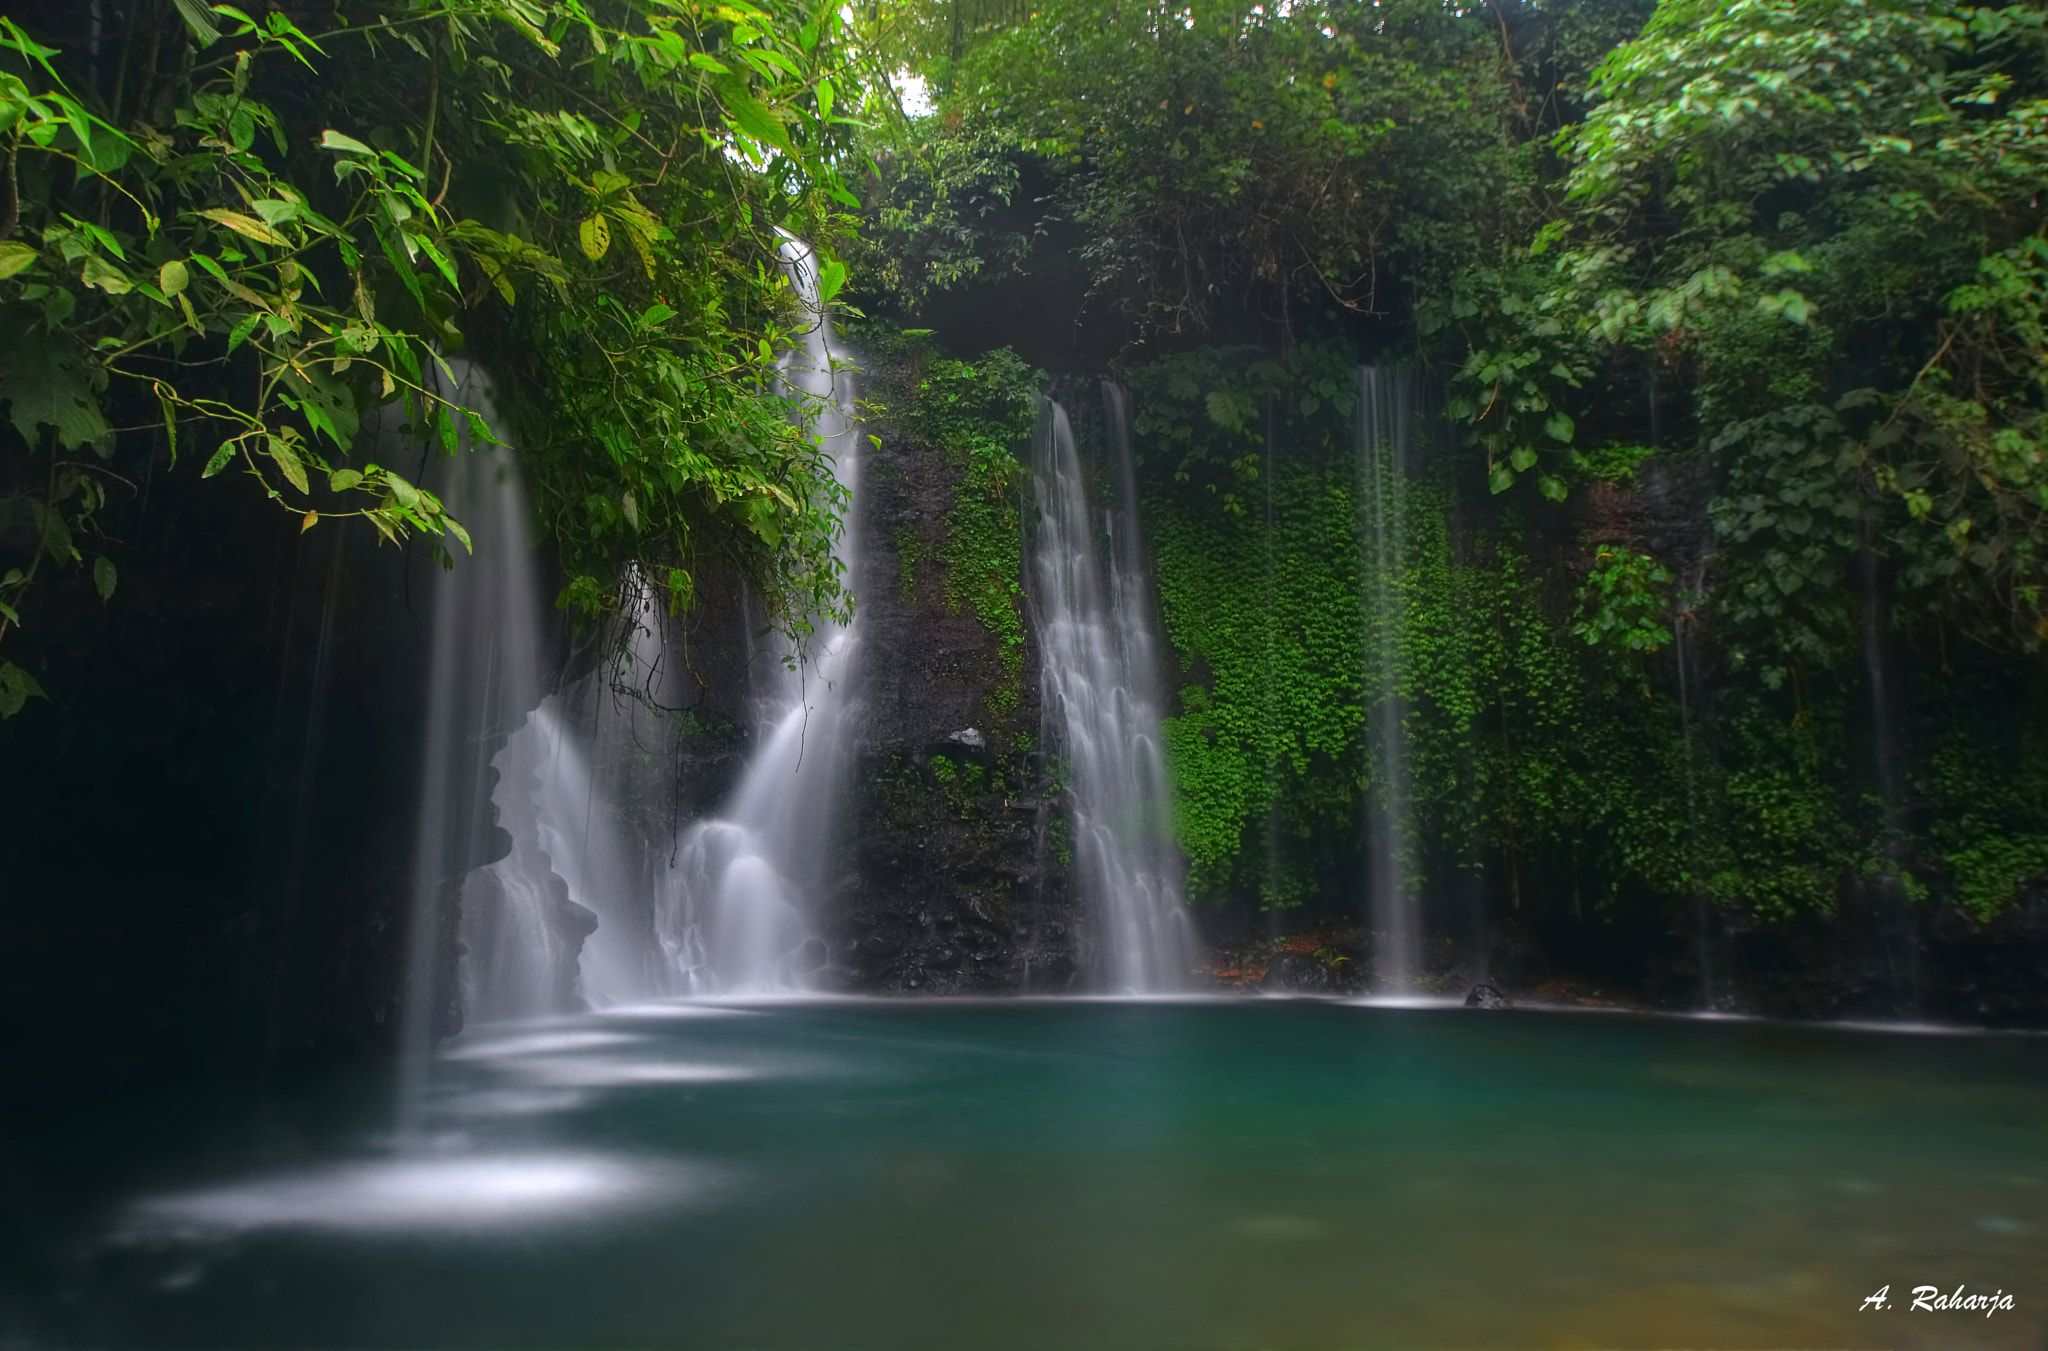 Fall 57 blue water from si bedil waterfall in pemalang